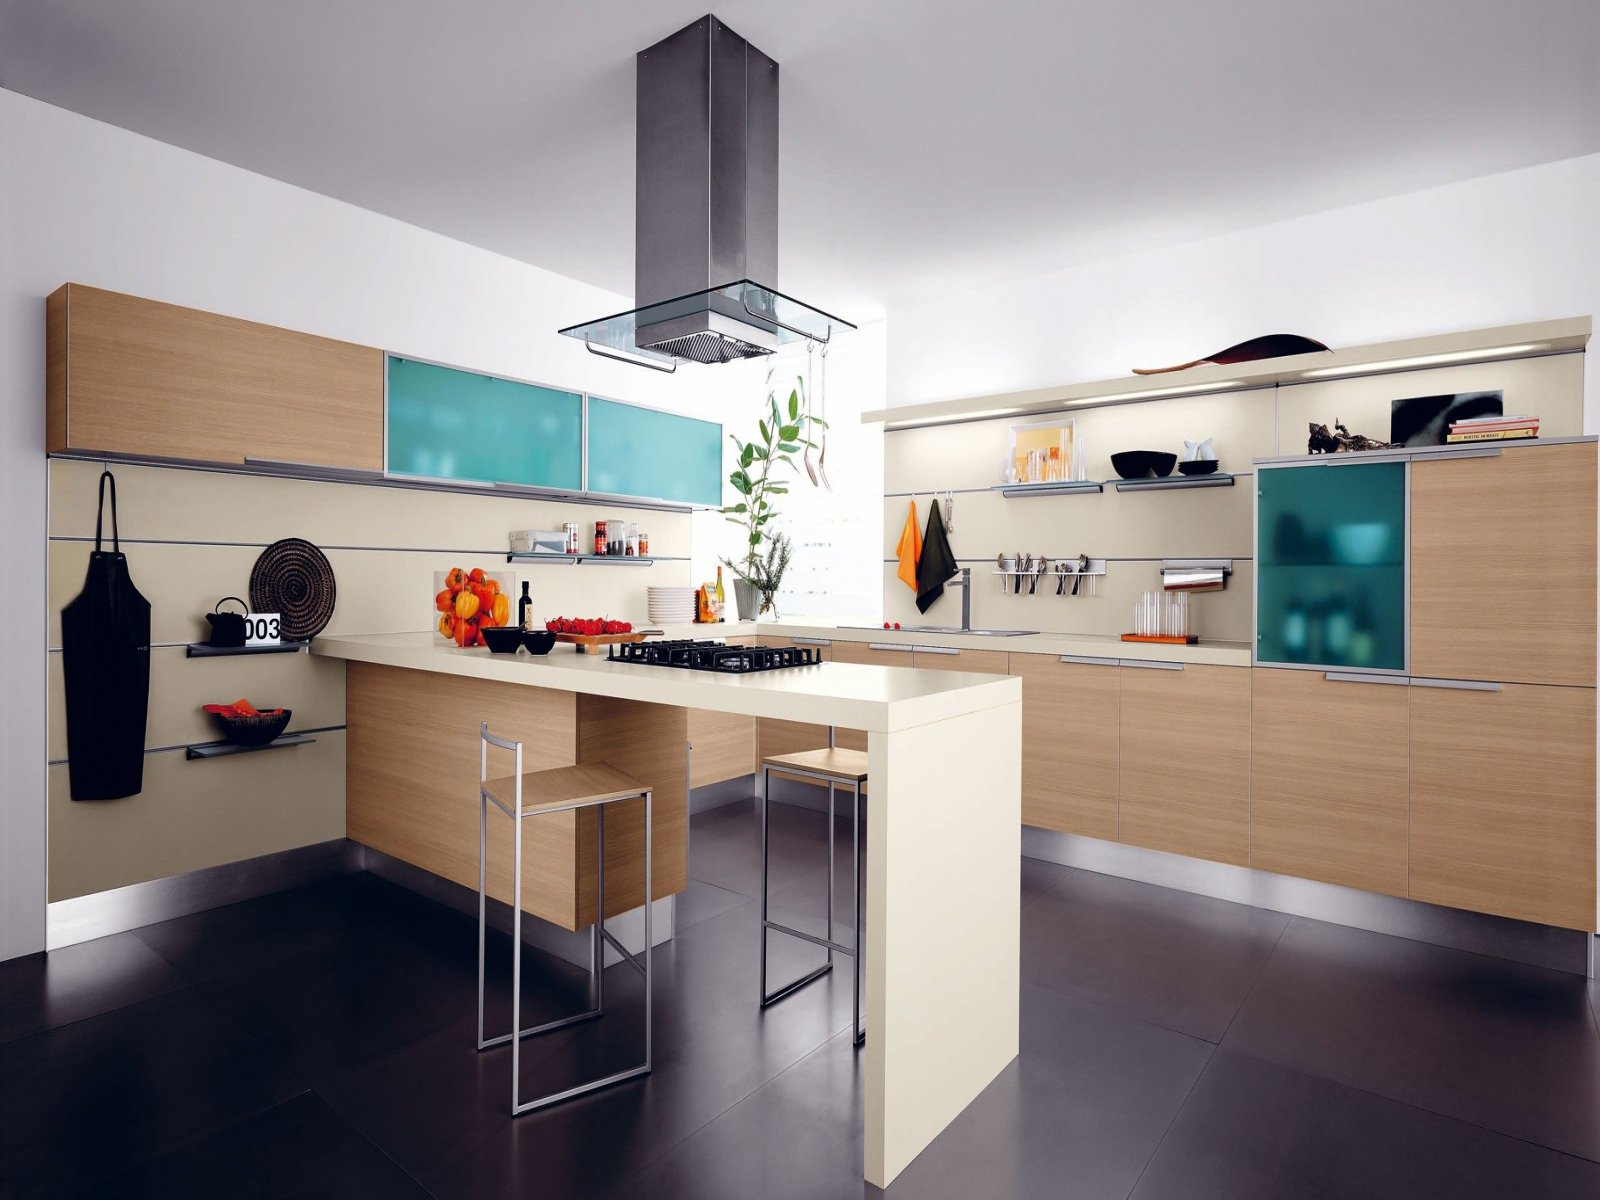 Cozy Great Modern Kitchen Themes In Decorative Modern Kitchen Decorating Ideas  Photos Uploaded modern kitchen theme ideas